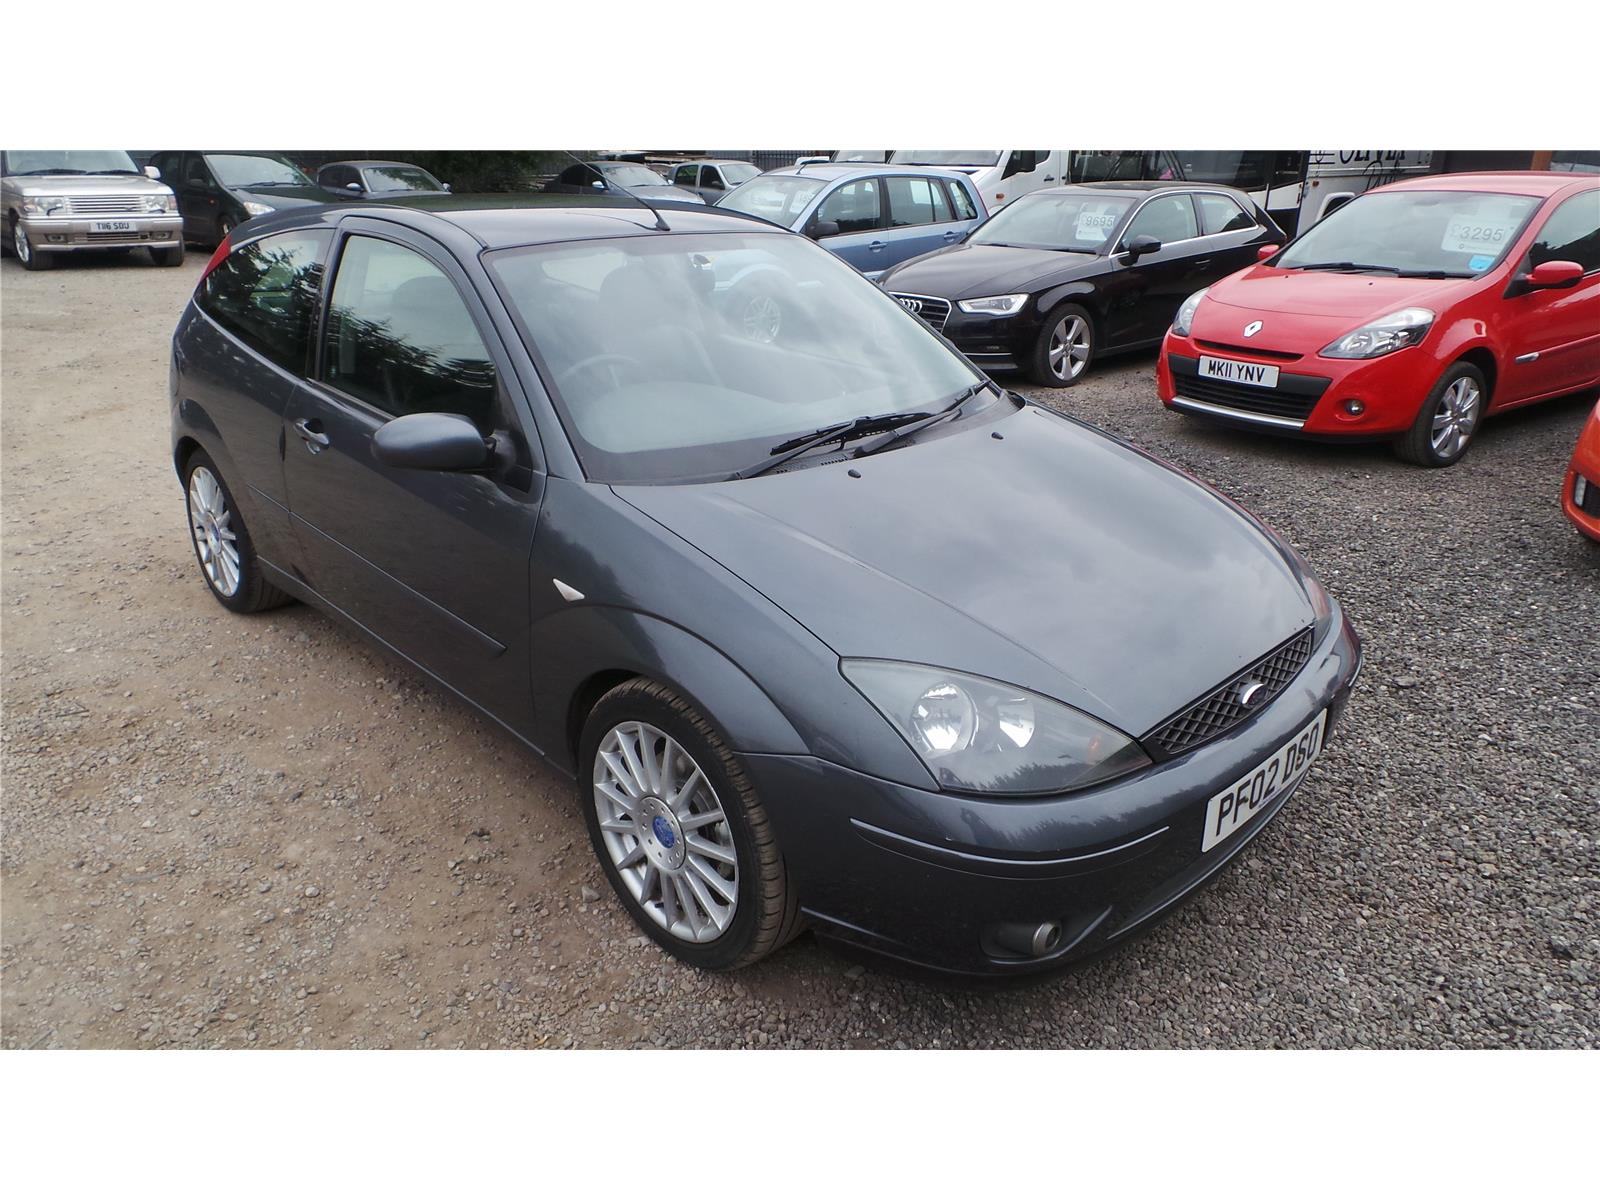 2002 Ford Focus ST170 Petrol Manual 3 Door Hatchback